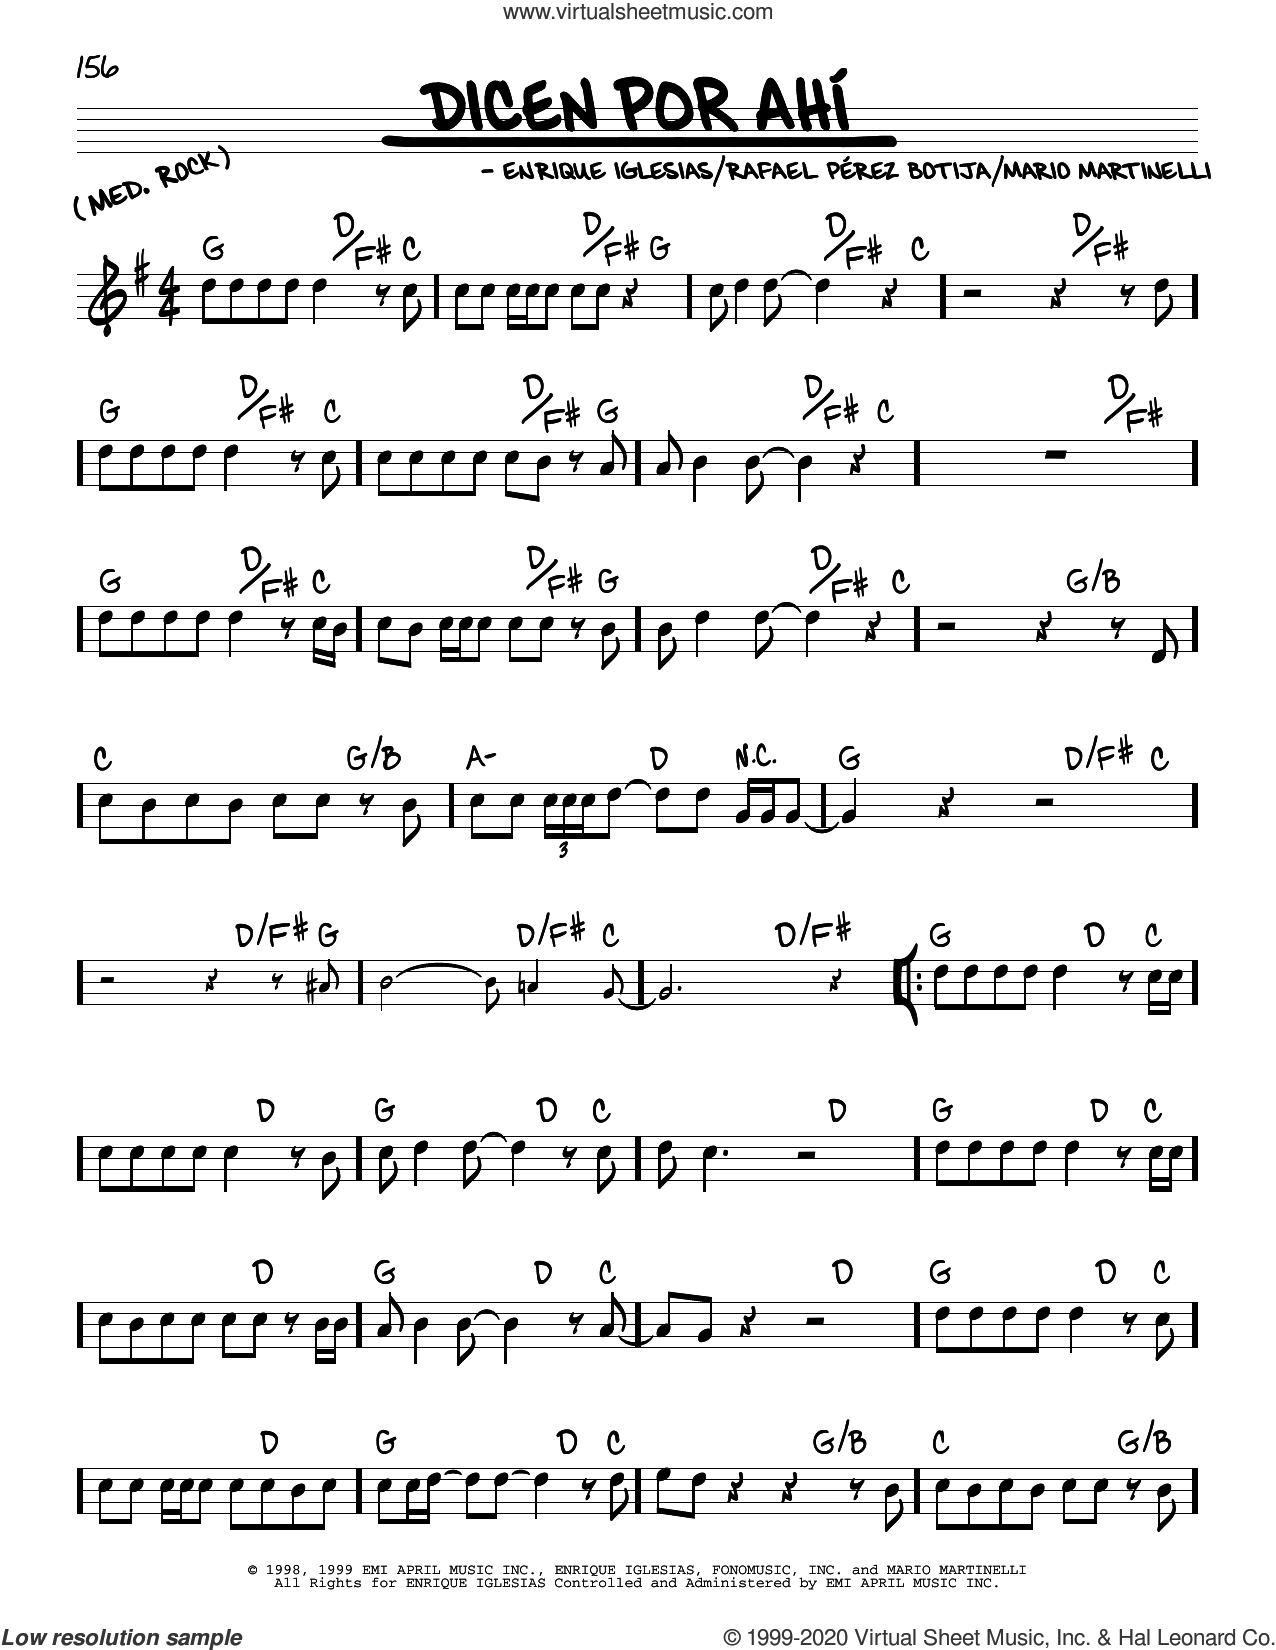 Dicen Por Ahi sheet music for voice and other instruments (real book) by Enrique Iglesias, Mario Martinelli and Rafael Perez Botija, intermediate skill level